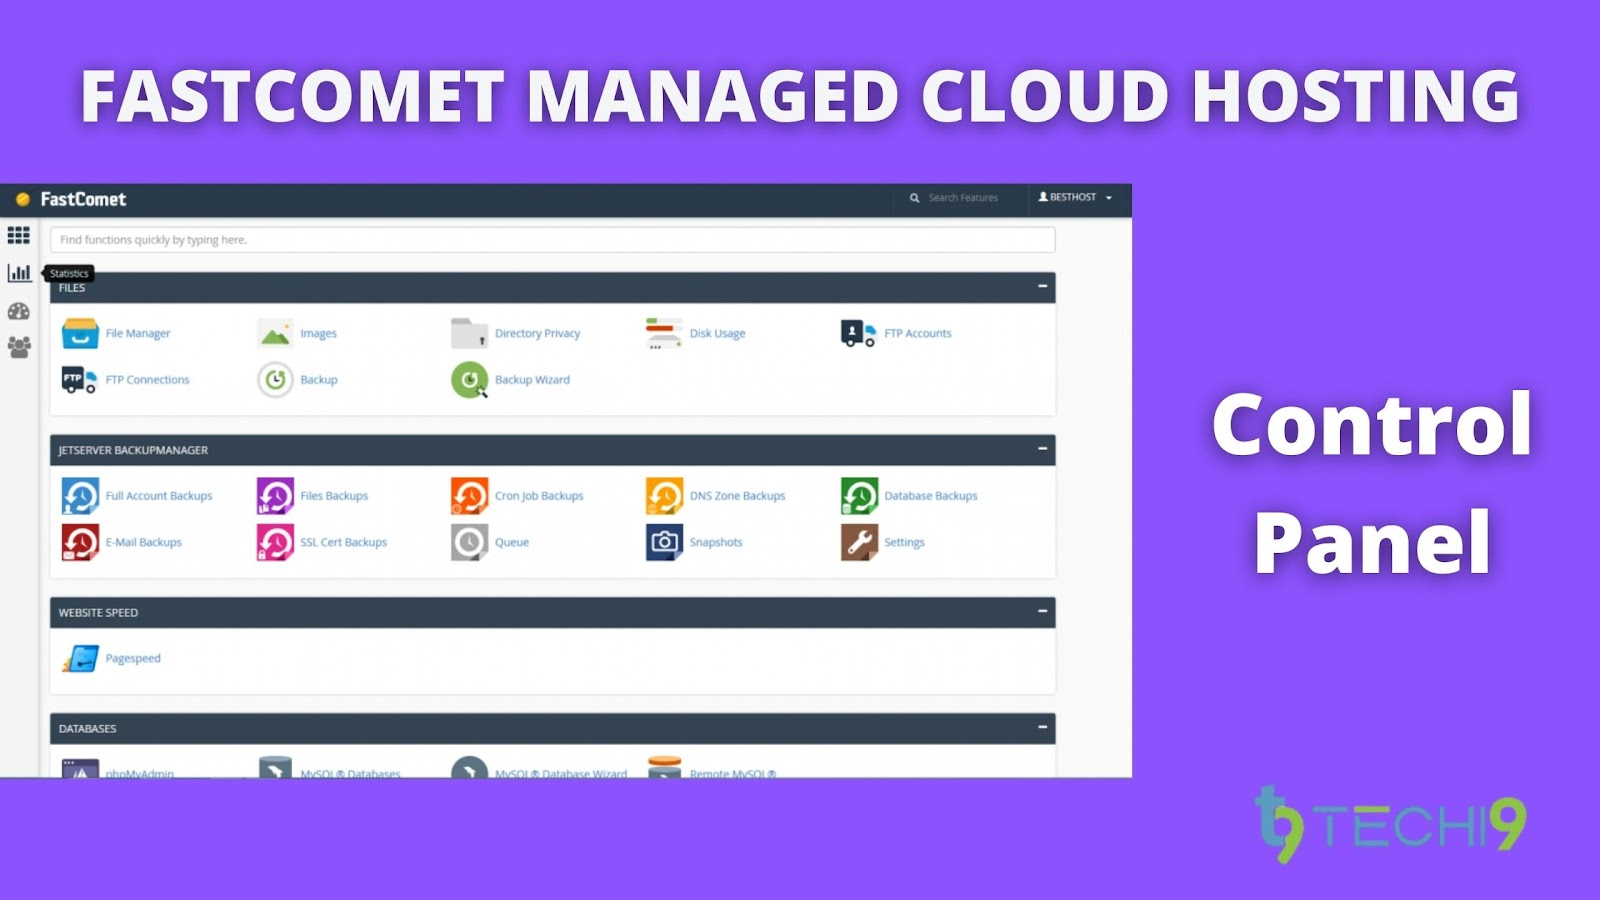 FastComet Managed Cloud Hosting - Control Panel